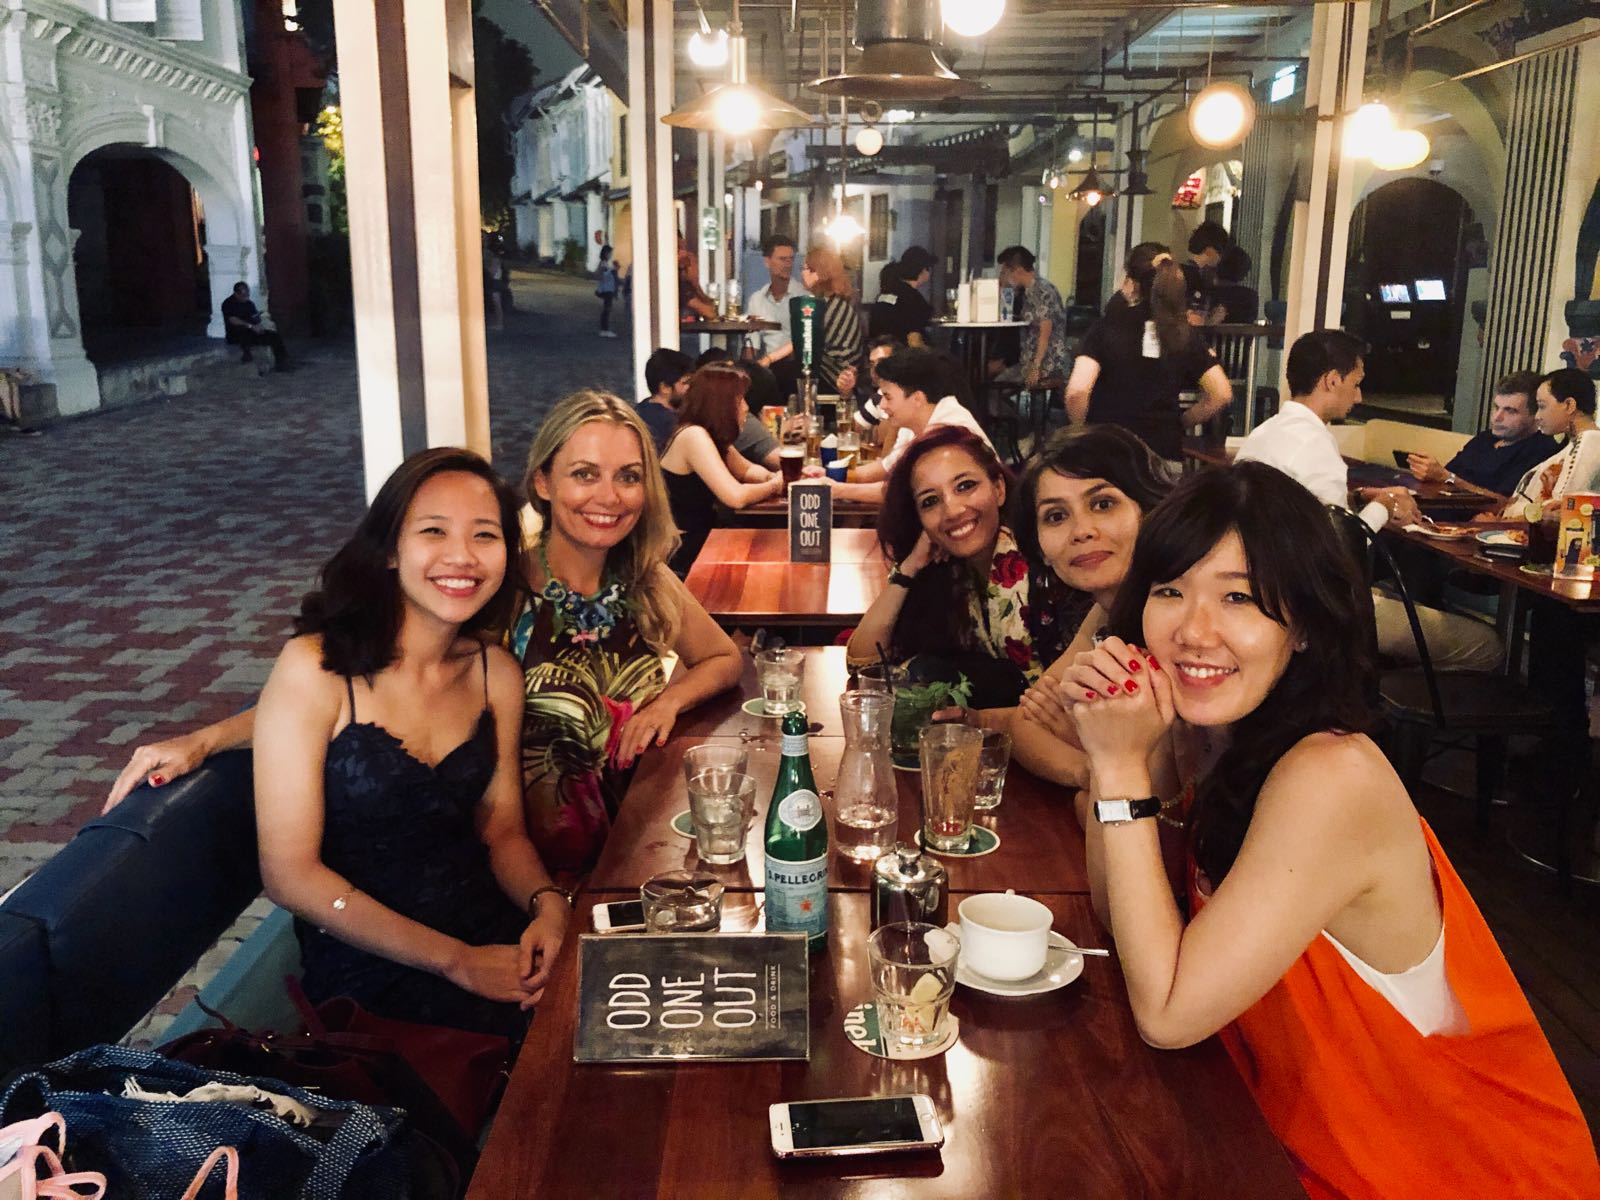 The nightcap with some of the co-founders of Women in Art, Singapore. From left: Beverly Hiong, Mamakan, Debasmitha Dasgupta, Madina Khamitova and Jolie Ow.